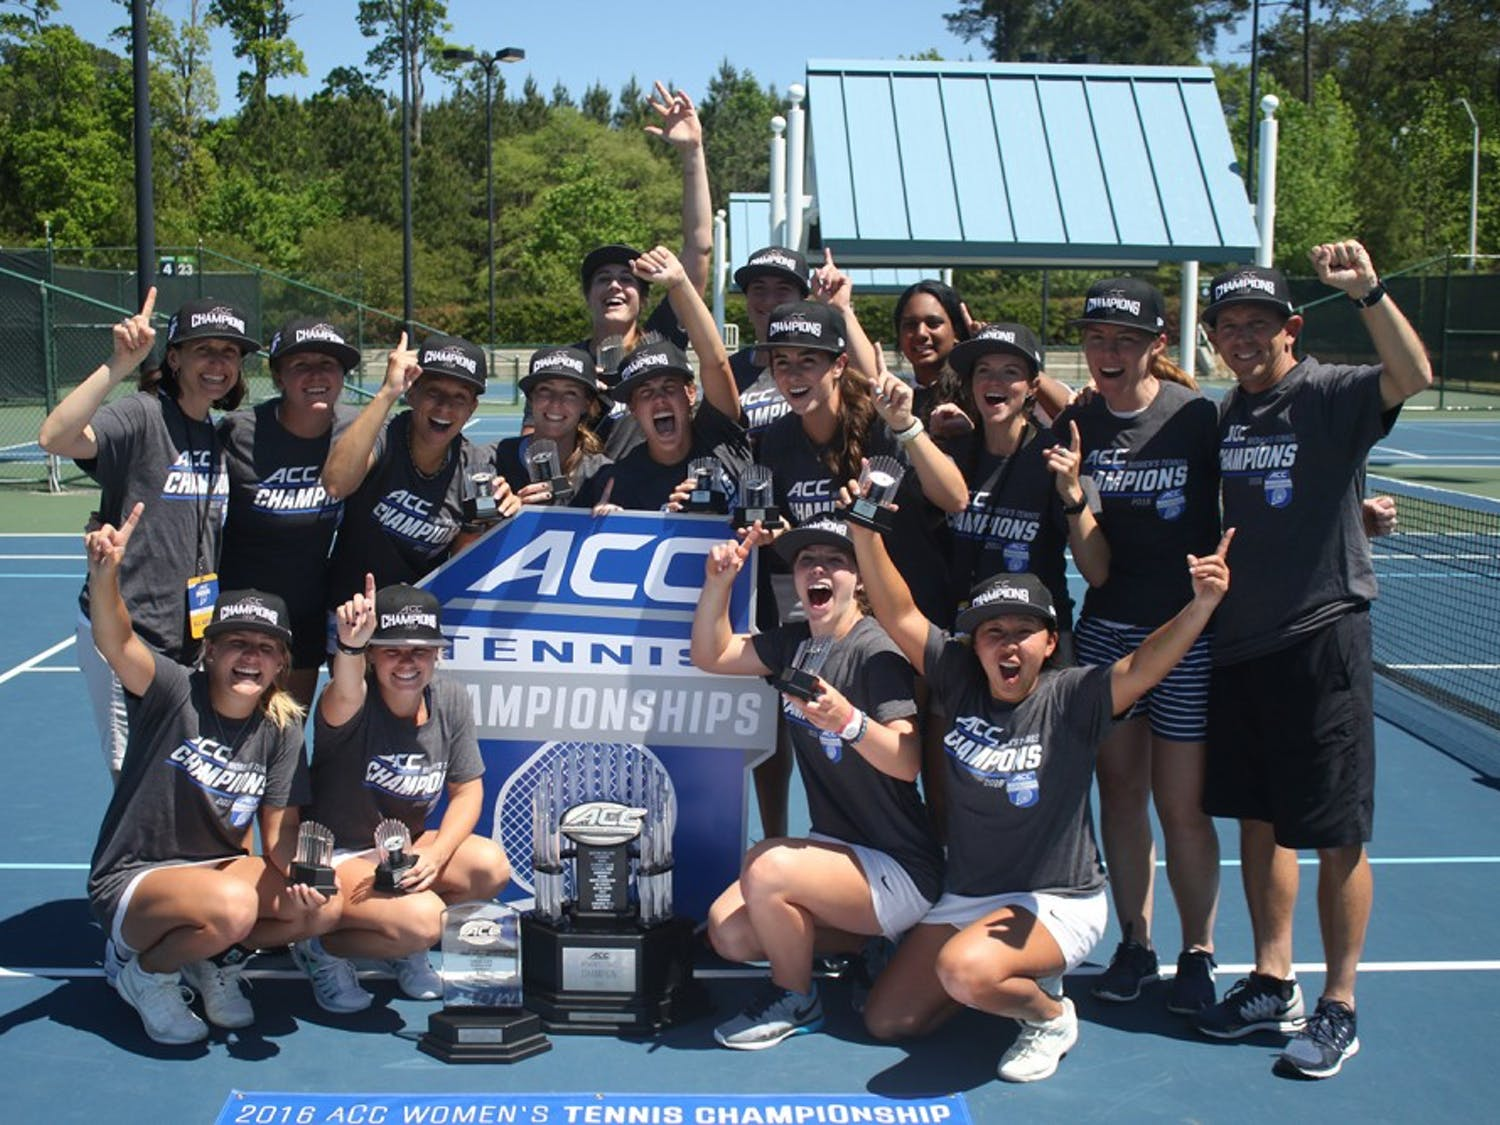 The UNC women's tennis team defeated the University of Miami 4-2 to capture the ACC Championship on Sunday in Cary.